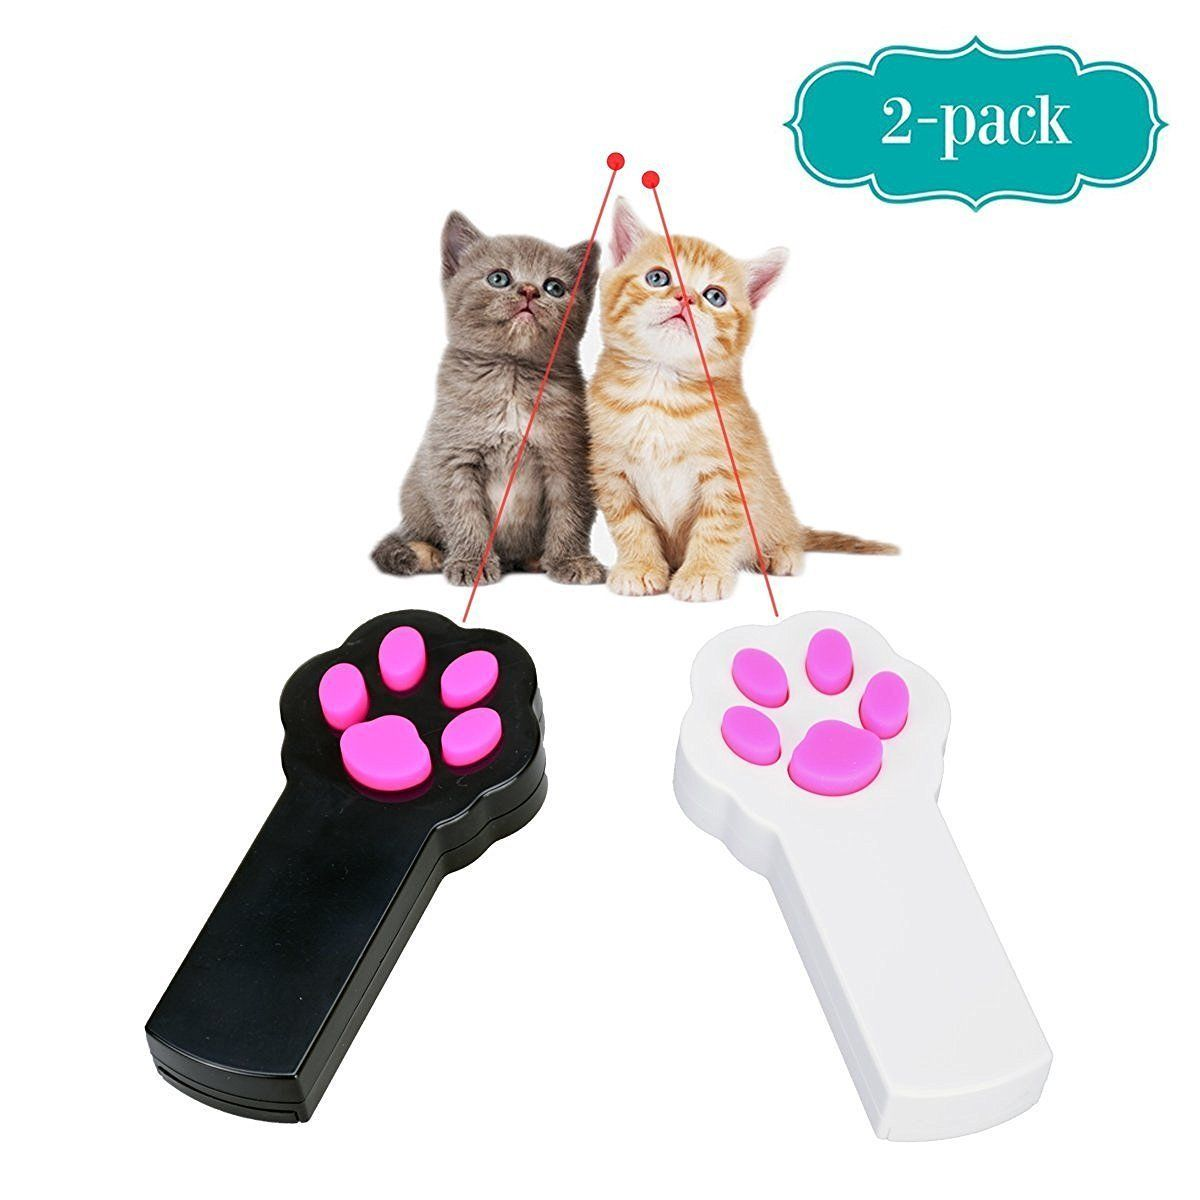 Ang 2 Pack Paw Style Red Pot Exercise Chaser For Cat And Dog Led Valentine Light Interactive